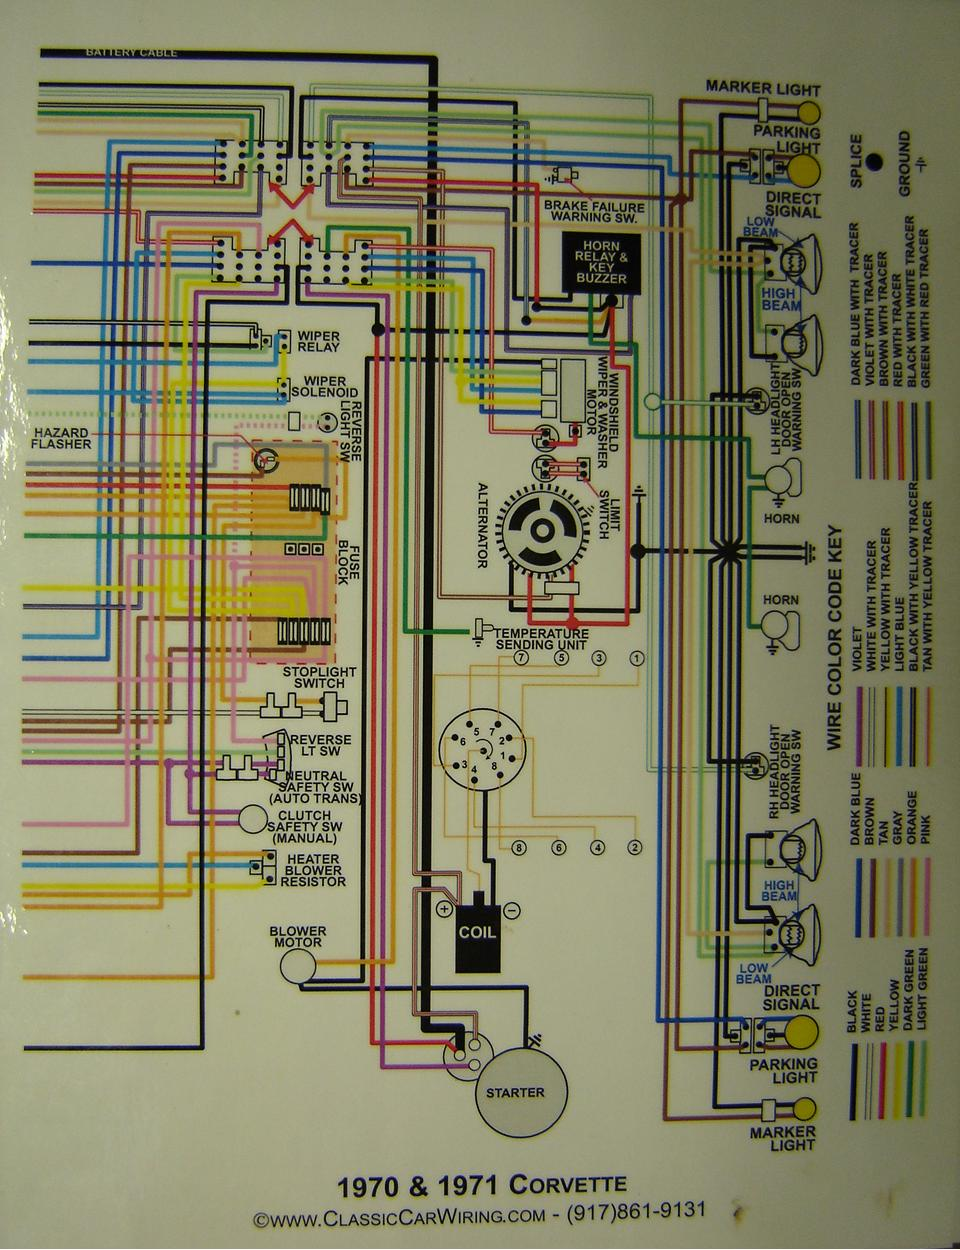 Images Of Citroen C3 Wiring Diagram Diagrams